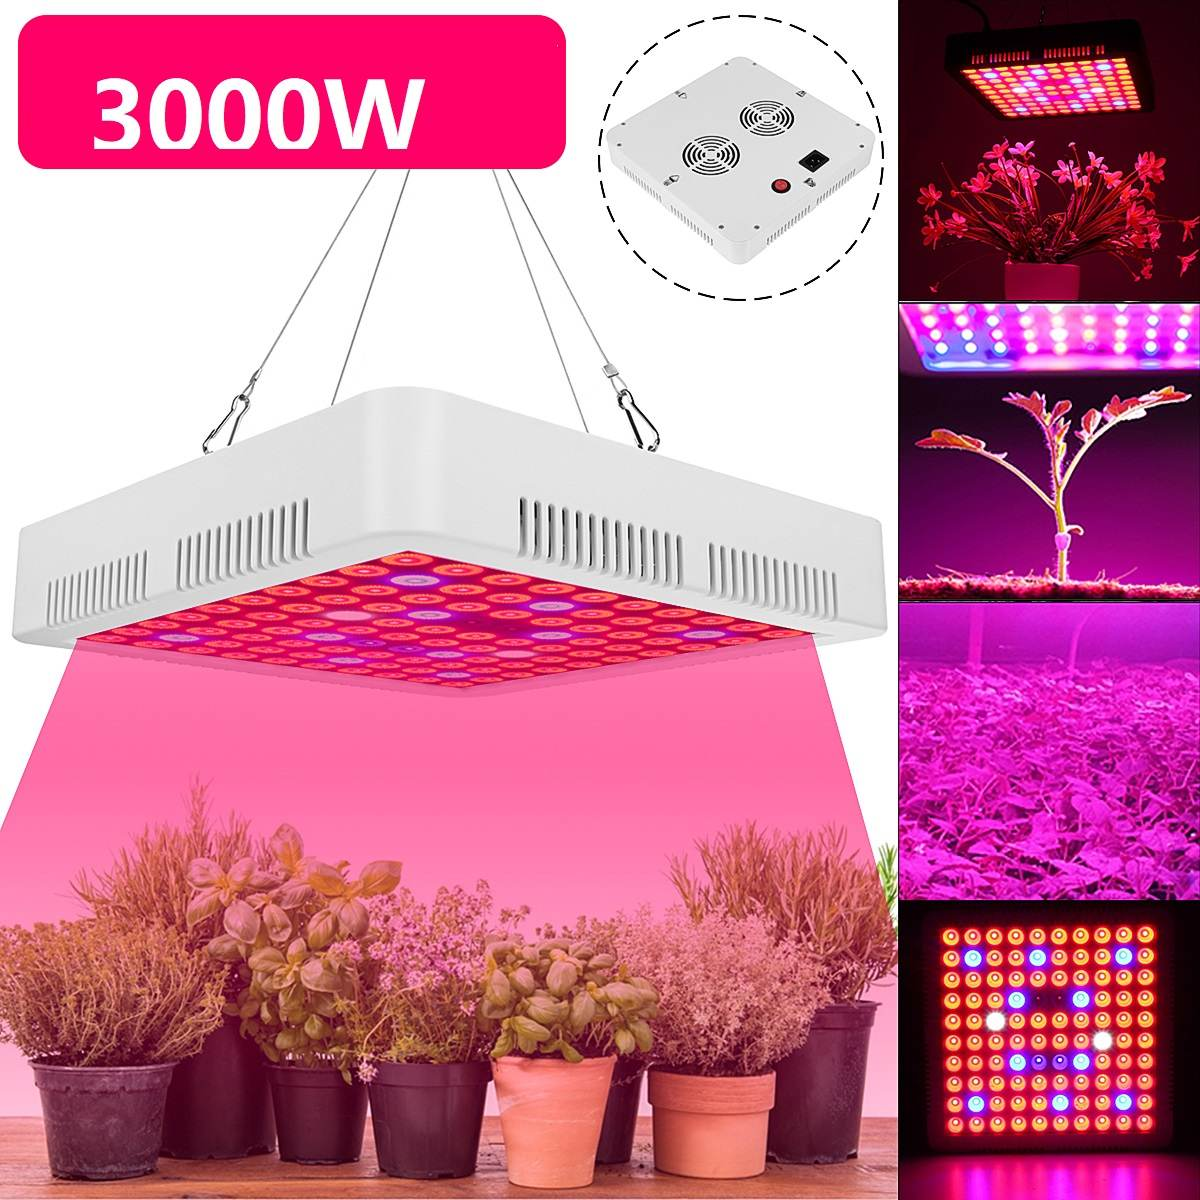 3000W LED Grow Lights Lamp Panel Hydroponic Plant Growing Full Spectrum For Veg Flower Indoor Plant Seeds AC85-265V Black White